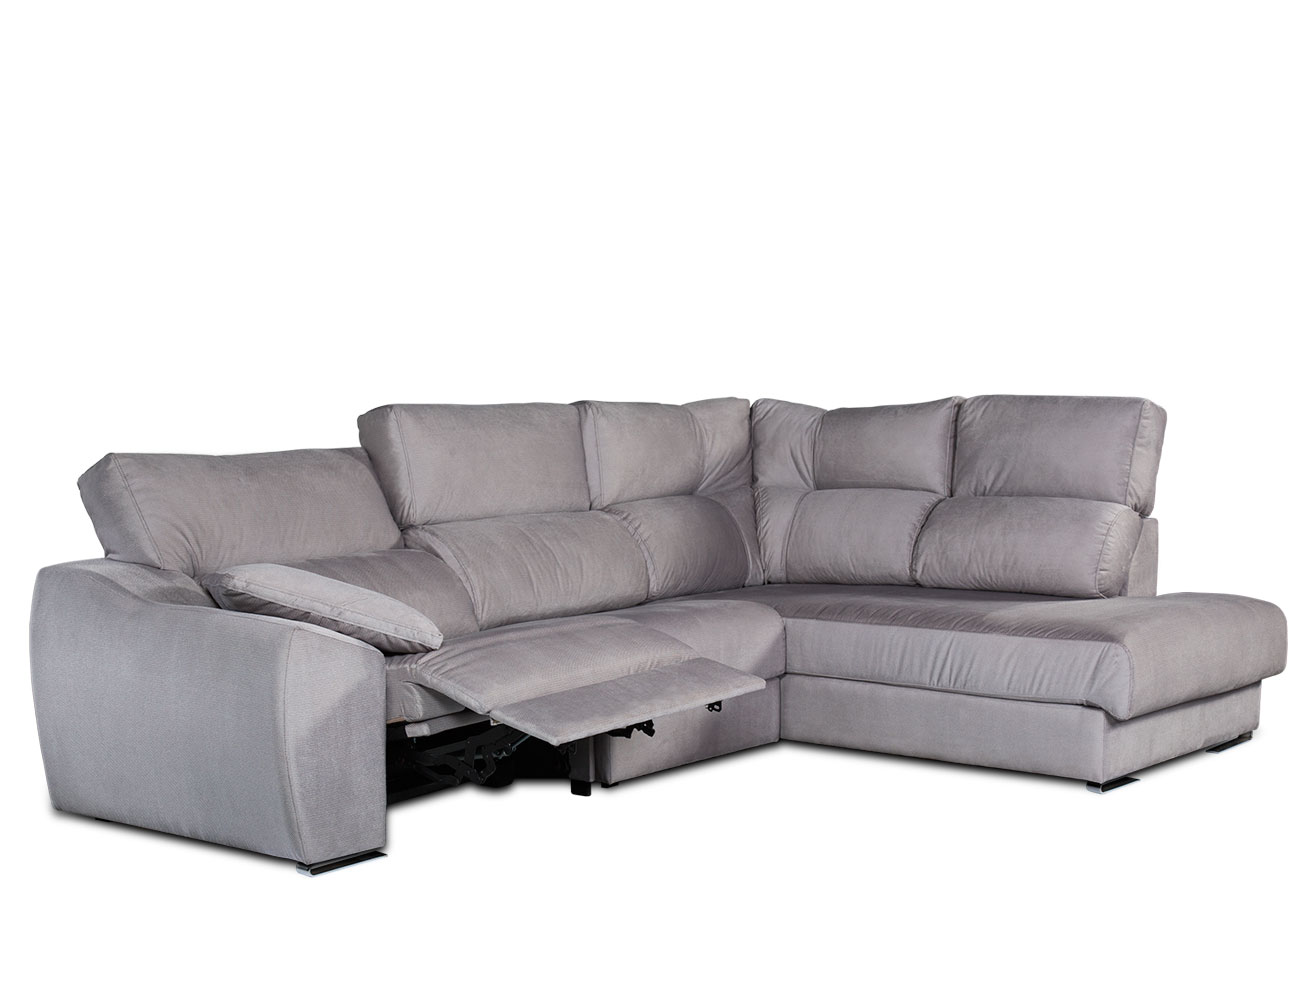 Sofa chaiselongue rincon electrico 23